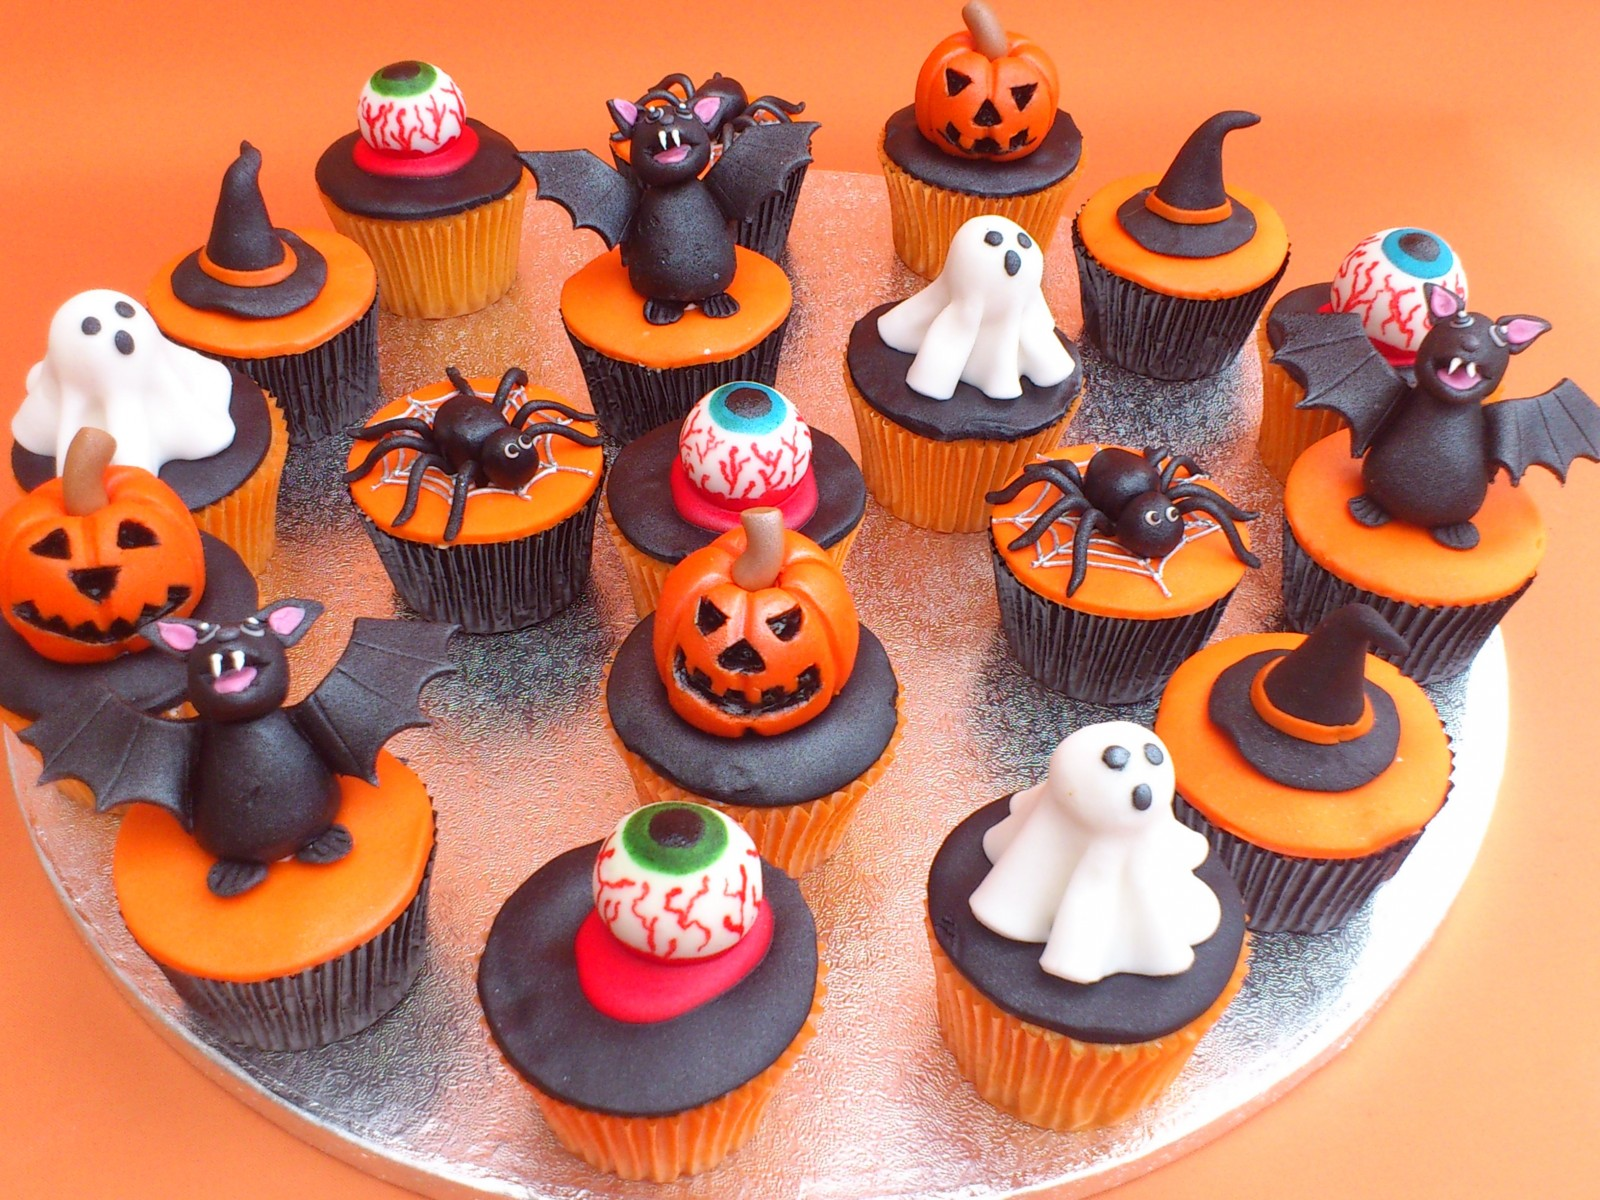 Halloween cakes decoration ideas little birthday cakes Halloween cupcakes